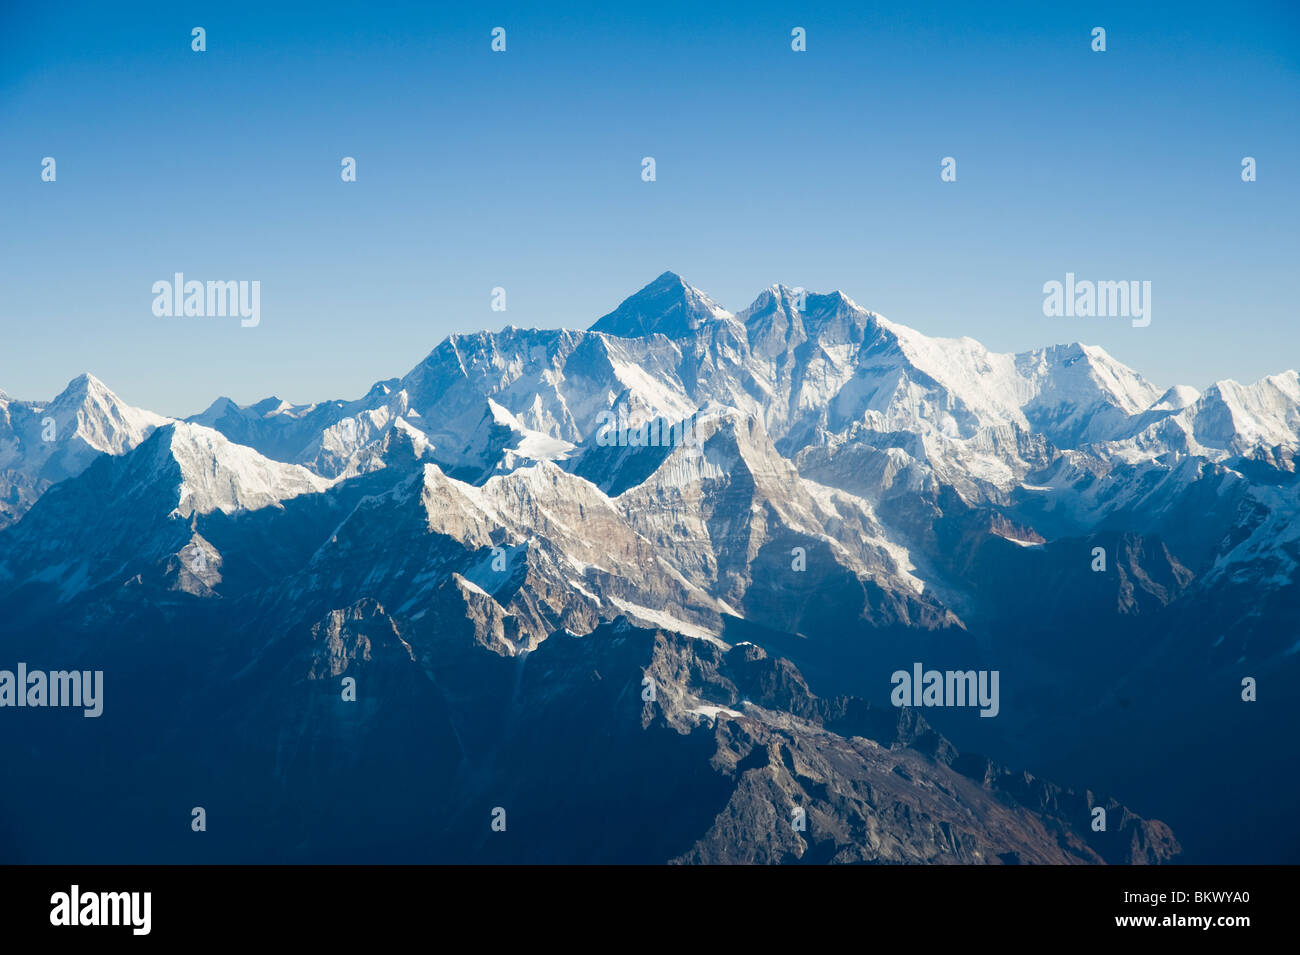 Aerial photograph of  the Himalaya mountain range with Mount Everest in the middle in Nepal - Stock Image